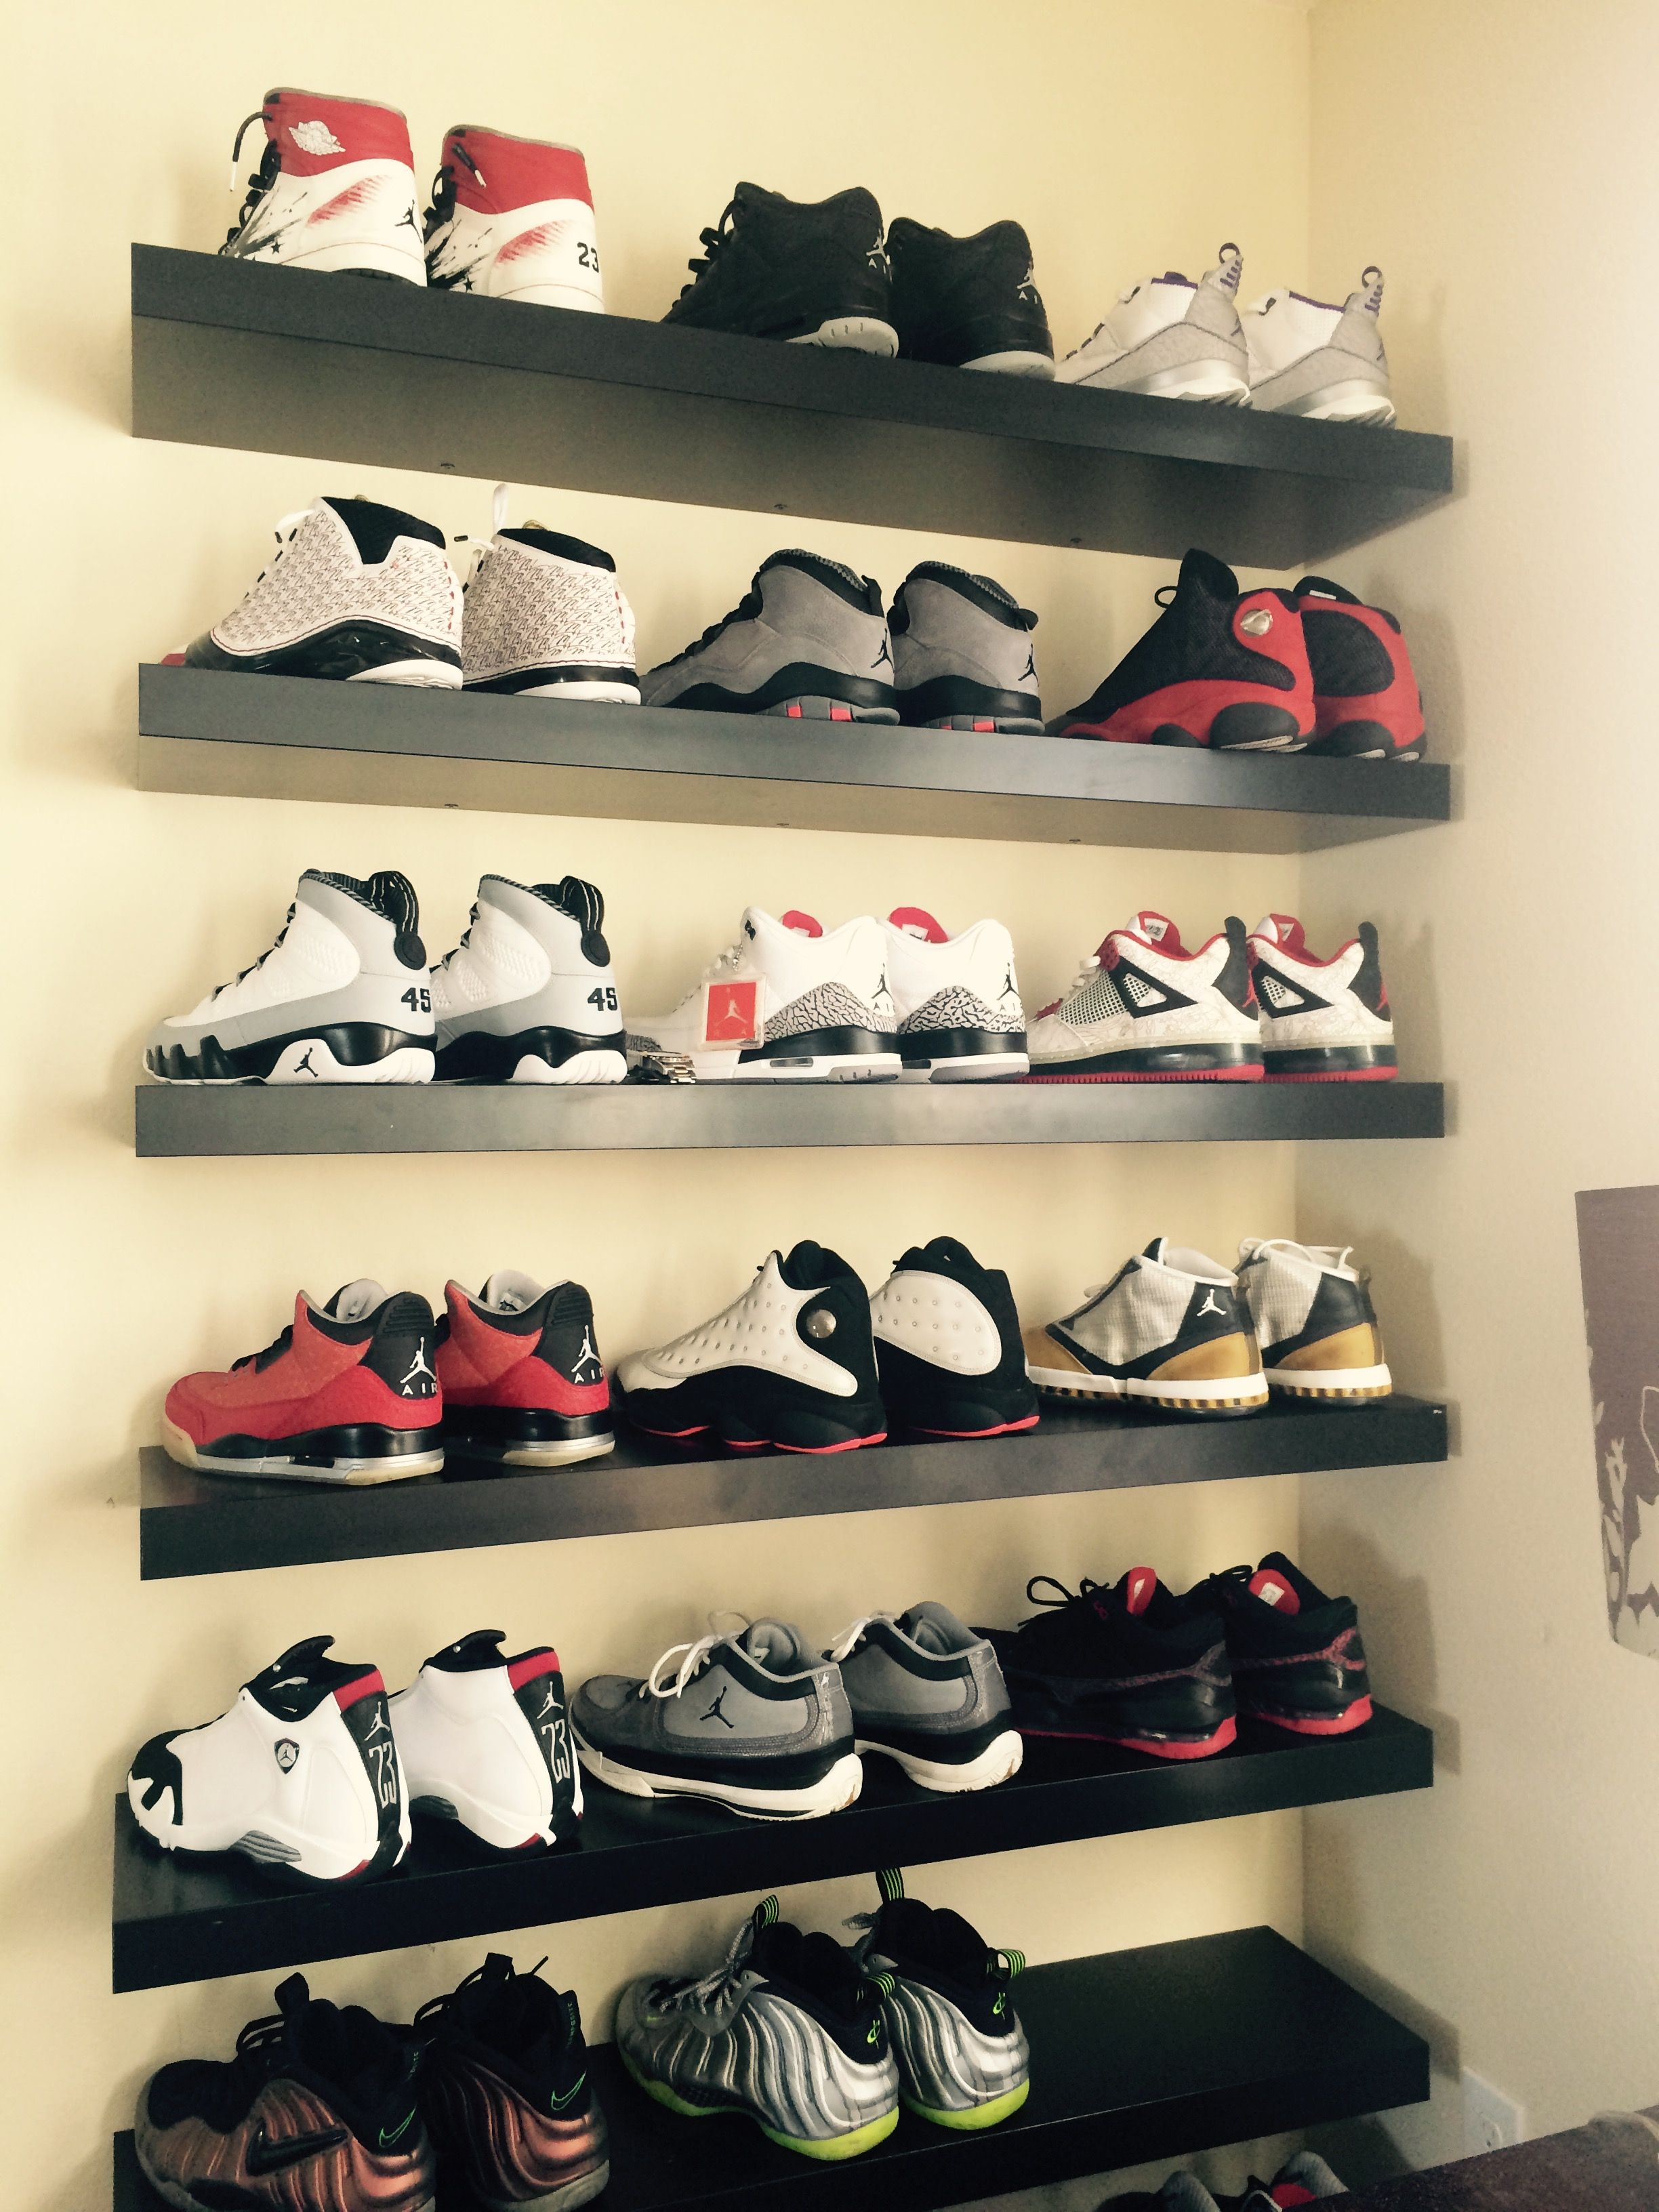 Shoe Shop, Jordans, Shoe Rack Store, Jordan Sneakers